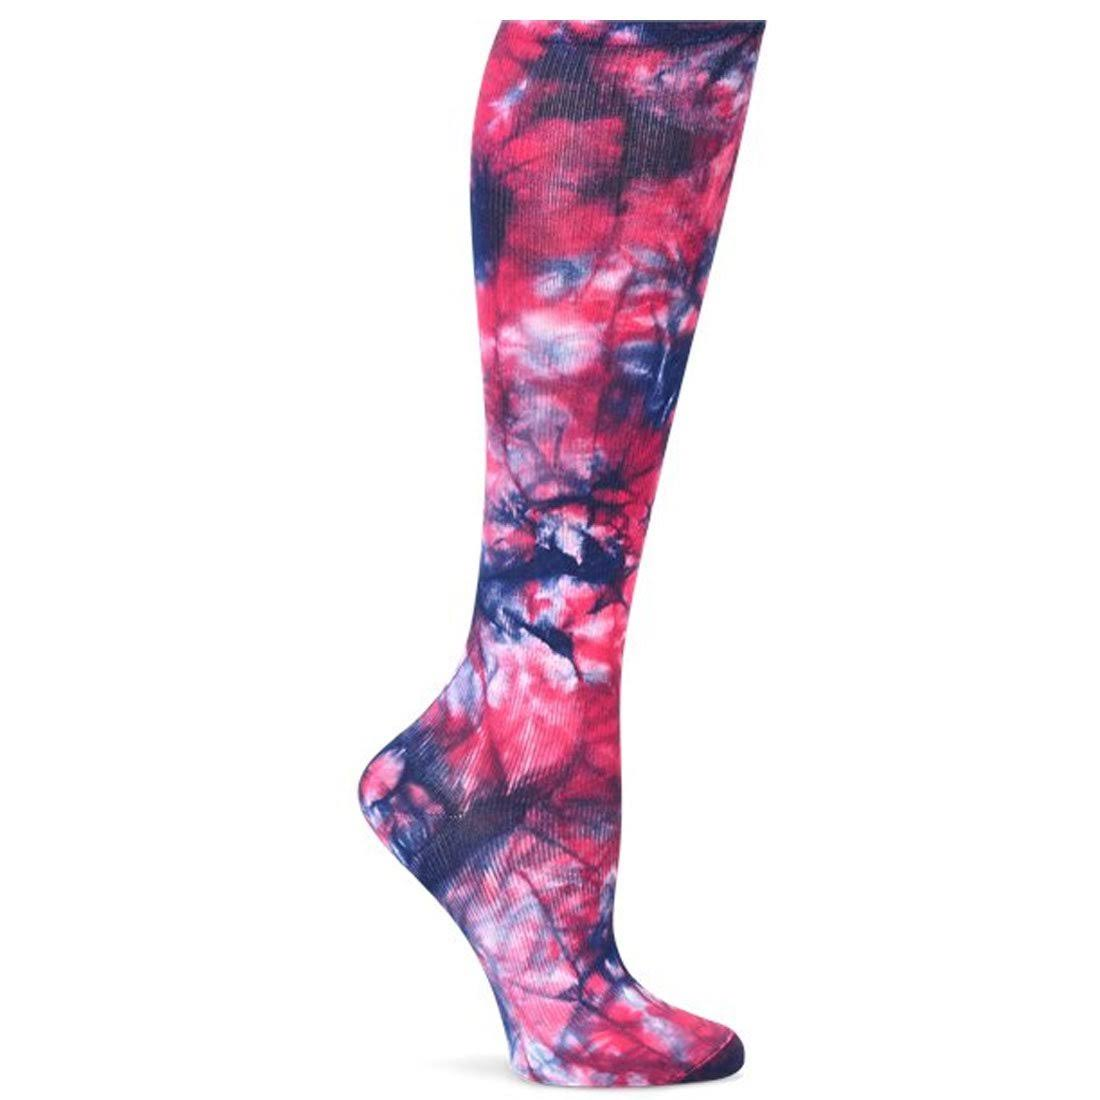 Nurse Mates Women's Compression Trouser Sock Navy Raspberry Tie Die